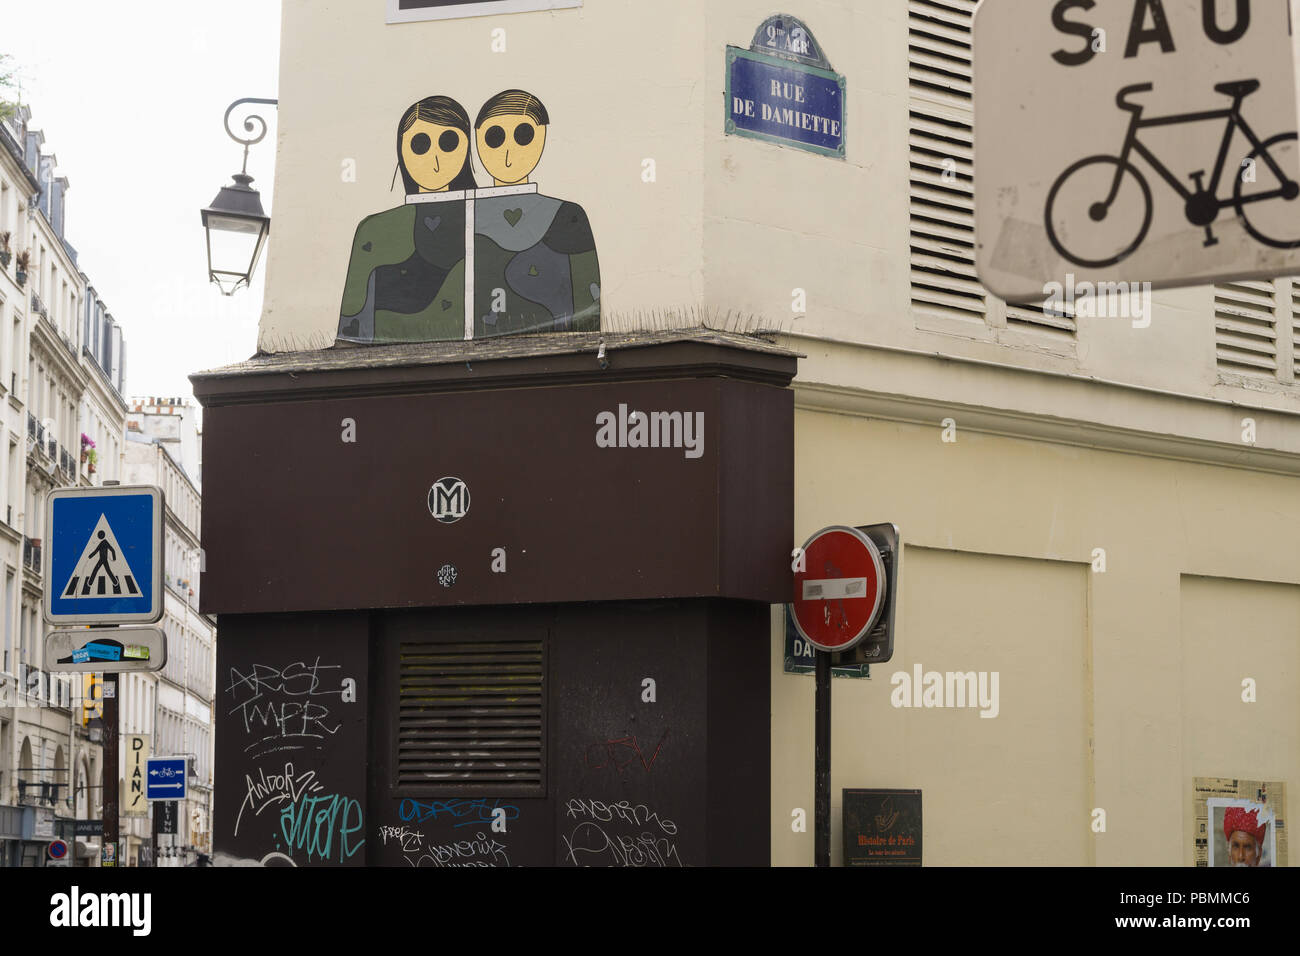 Stencil graffiti on a Parisian building, France. - Stock Image